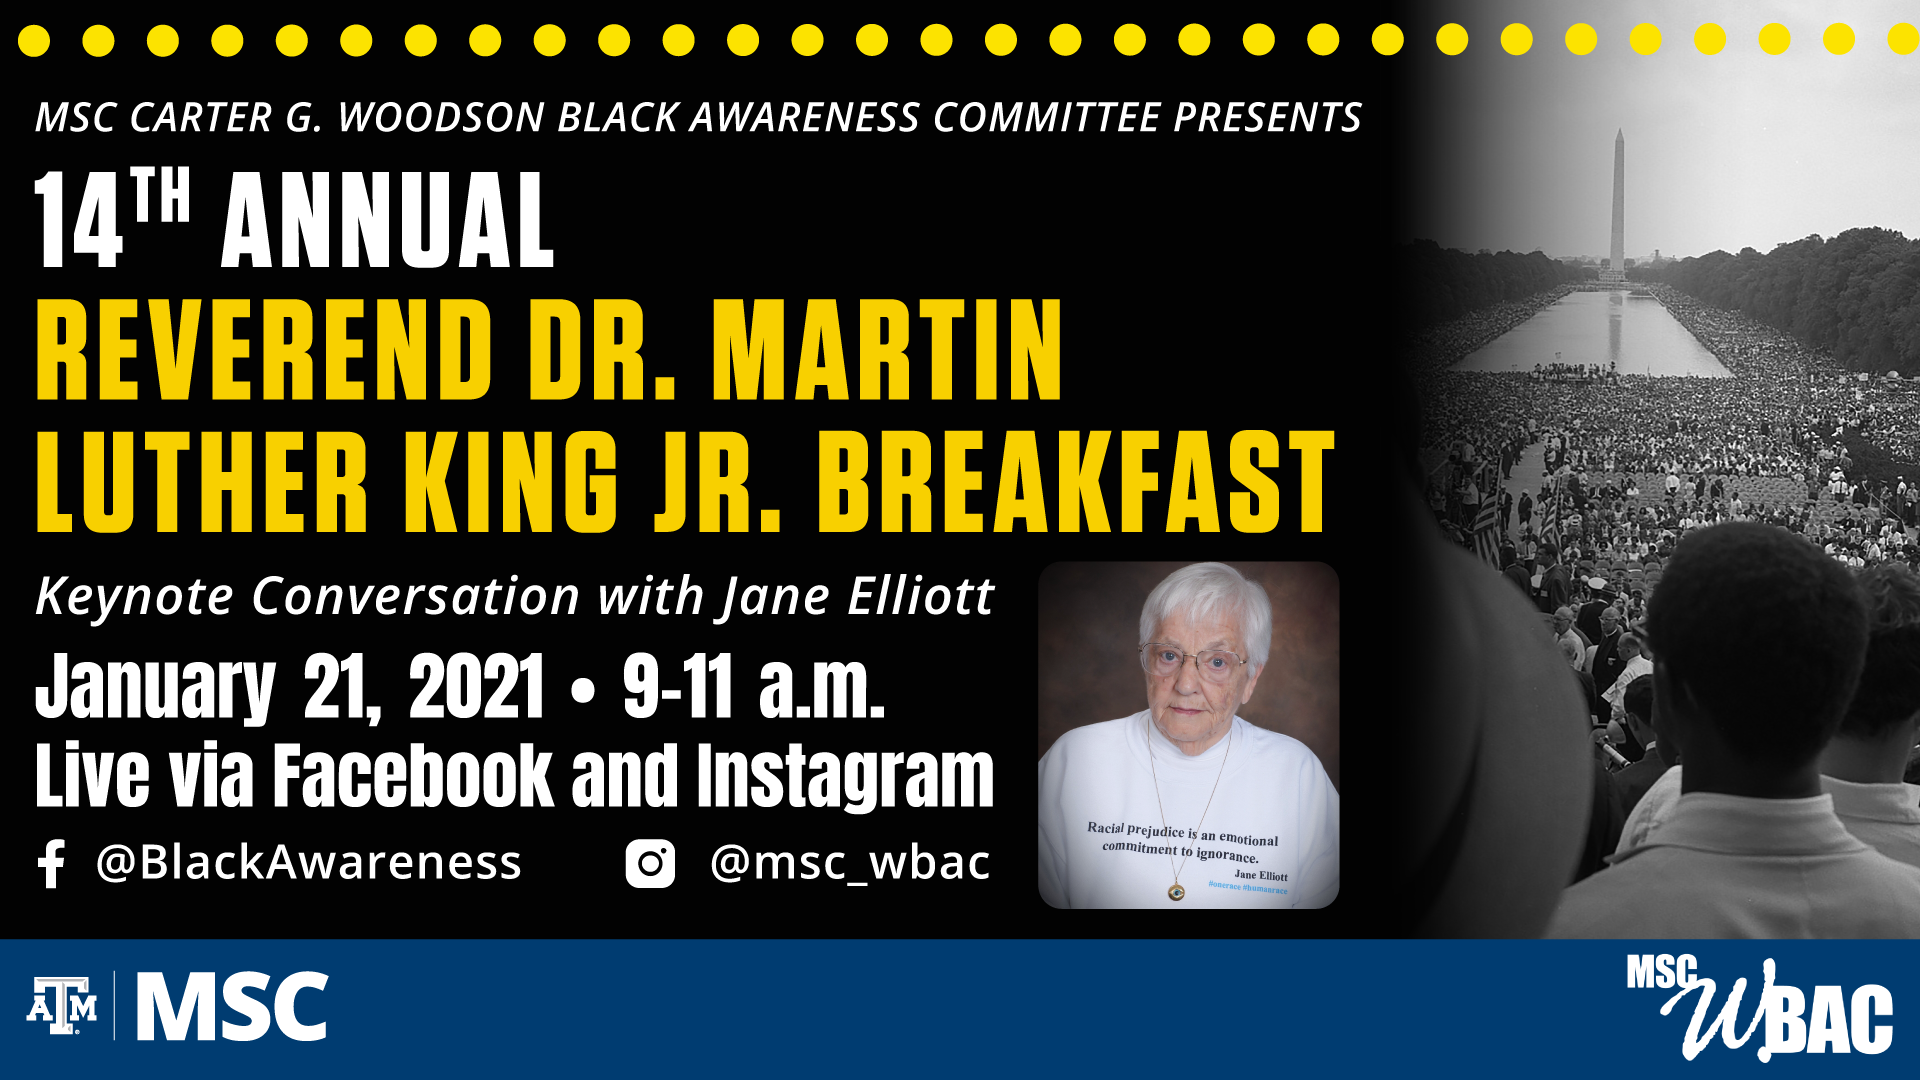 MSC WBAC presents 14th Annual Reverend Dr. Martin Luther King Jr. Breakfast, keynote conversation with Jane Elliot, this January 21,2021 from 9 to 11 a.m. Live via Facebook @BlackAwareness and Live via Instagram @msc_wbac